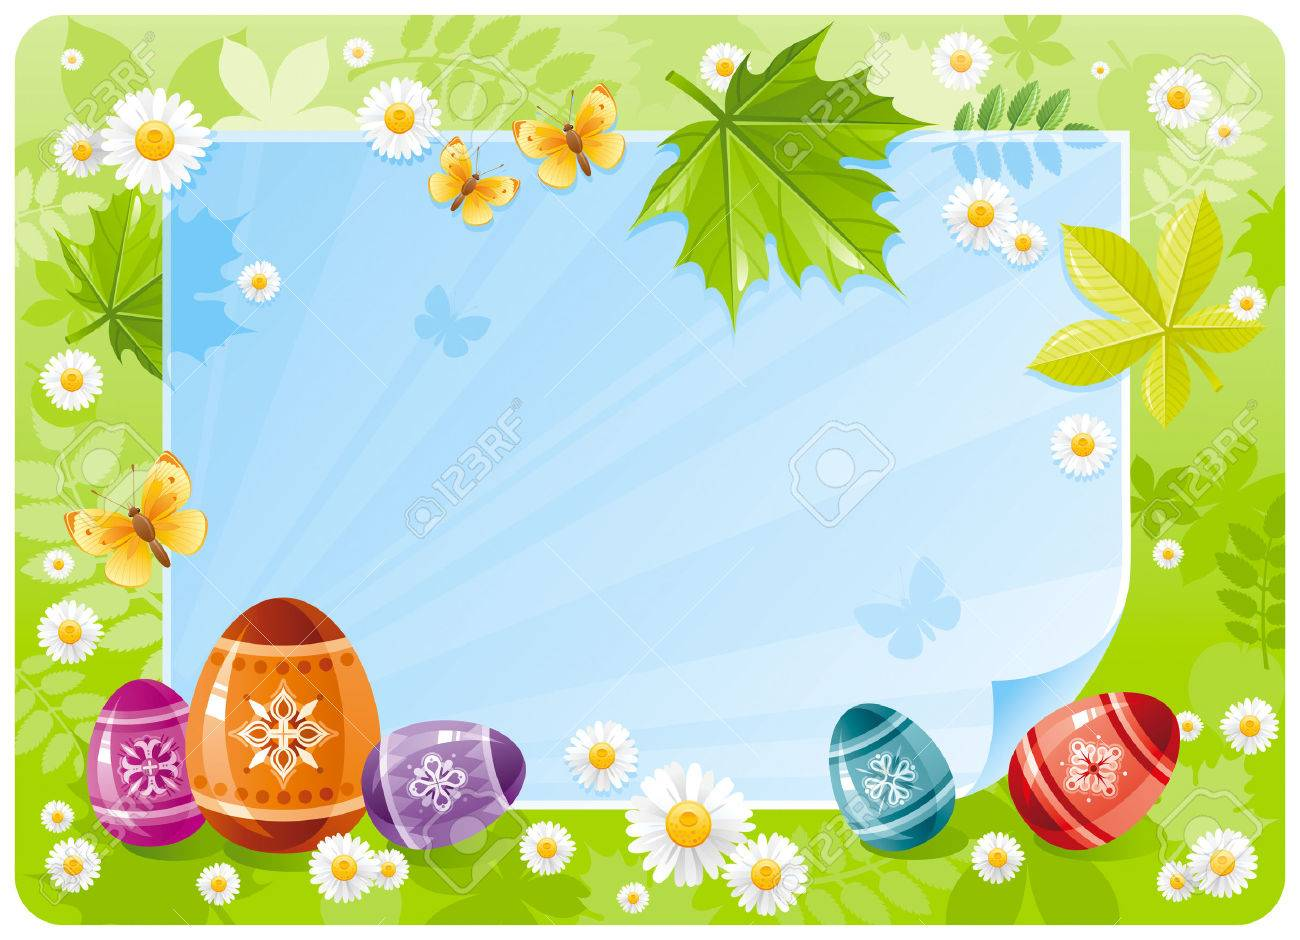 1164 Happy Easter free clipart.